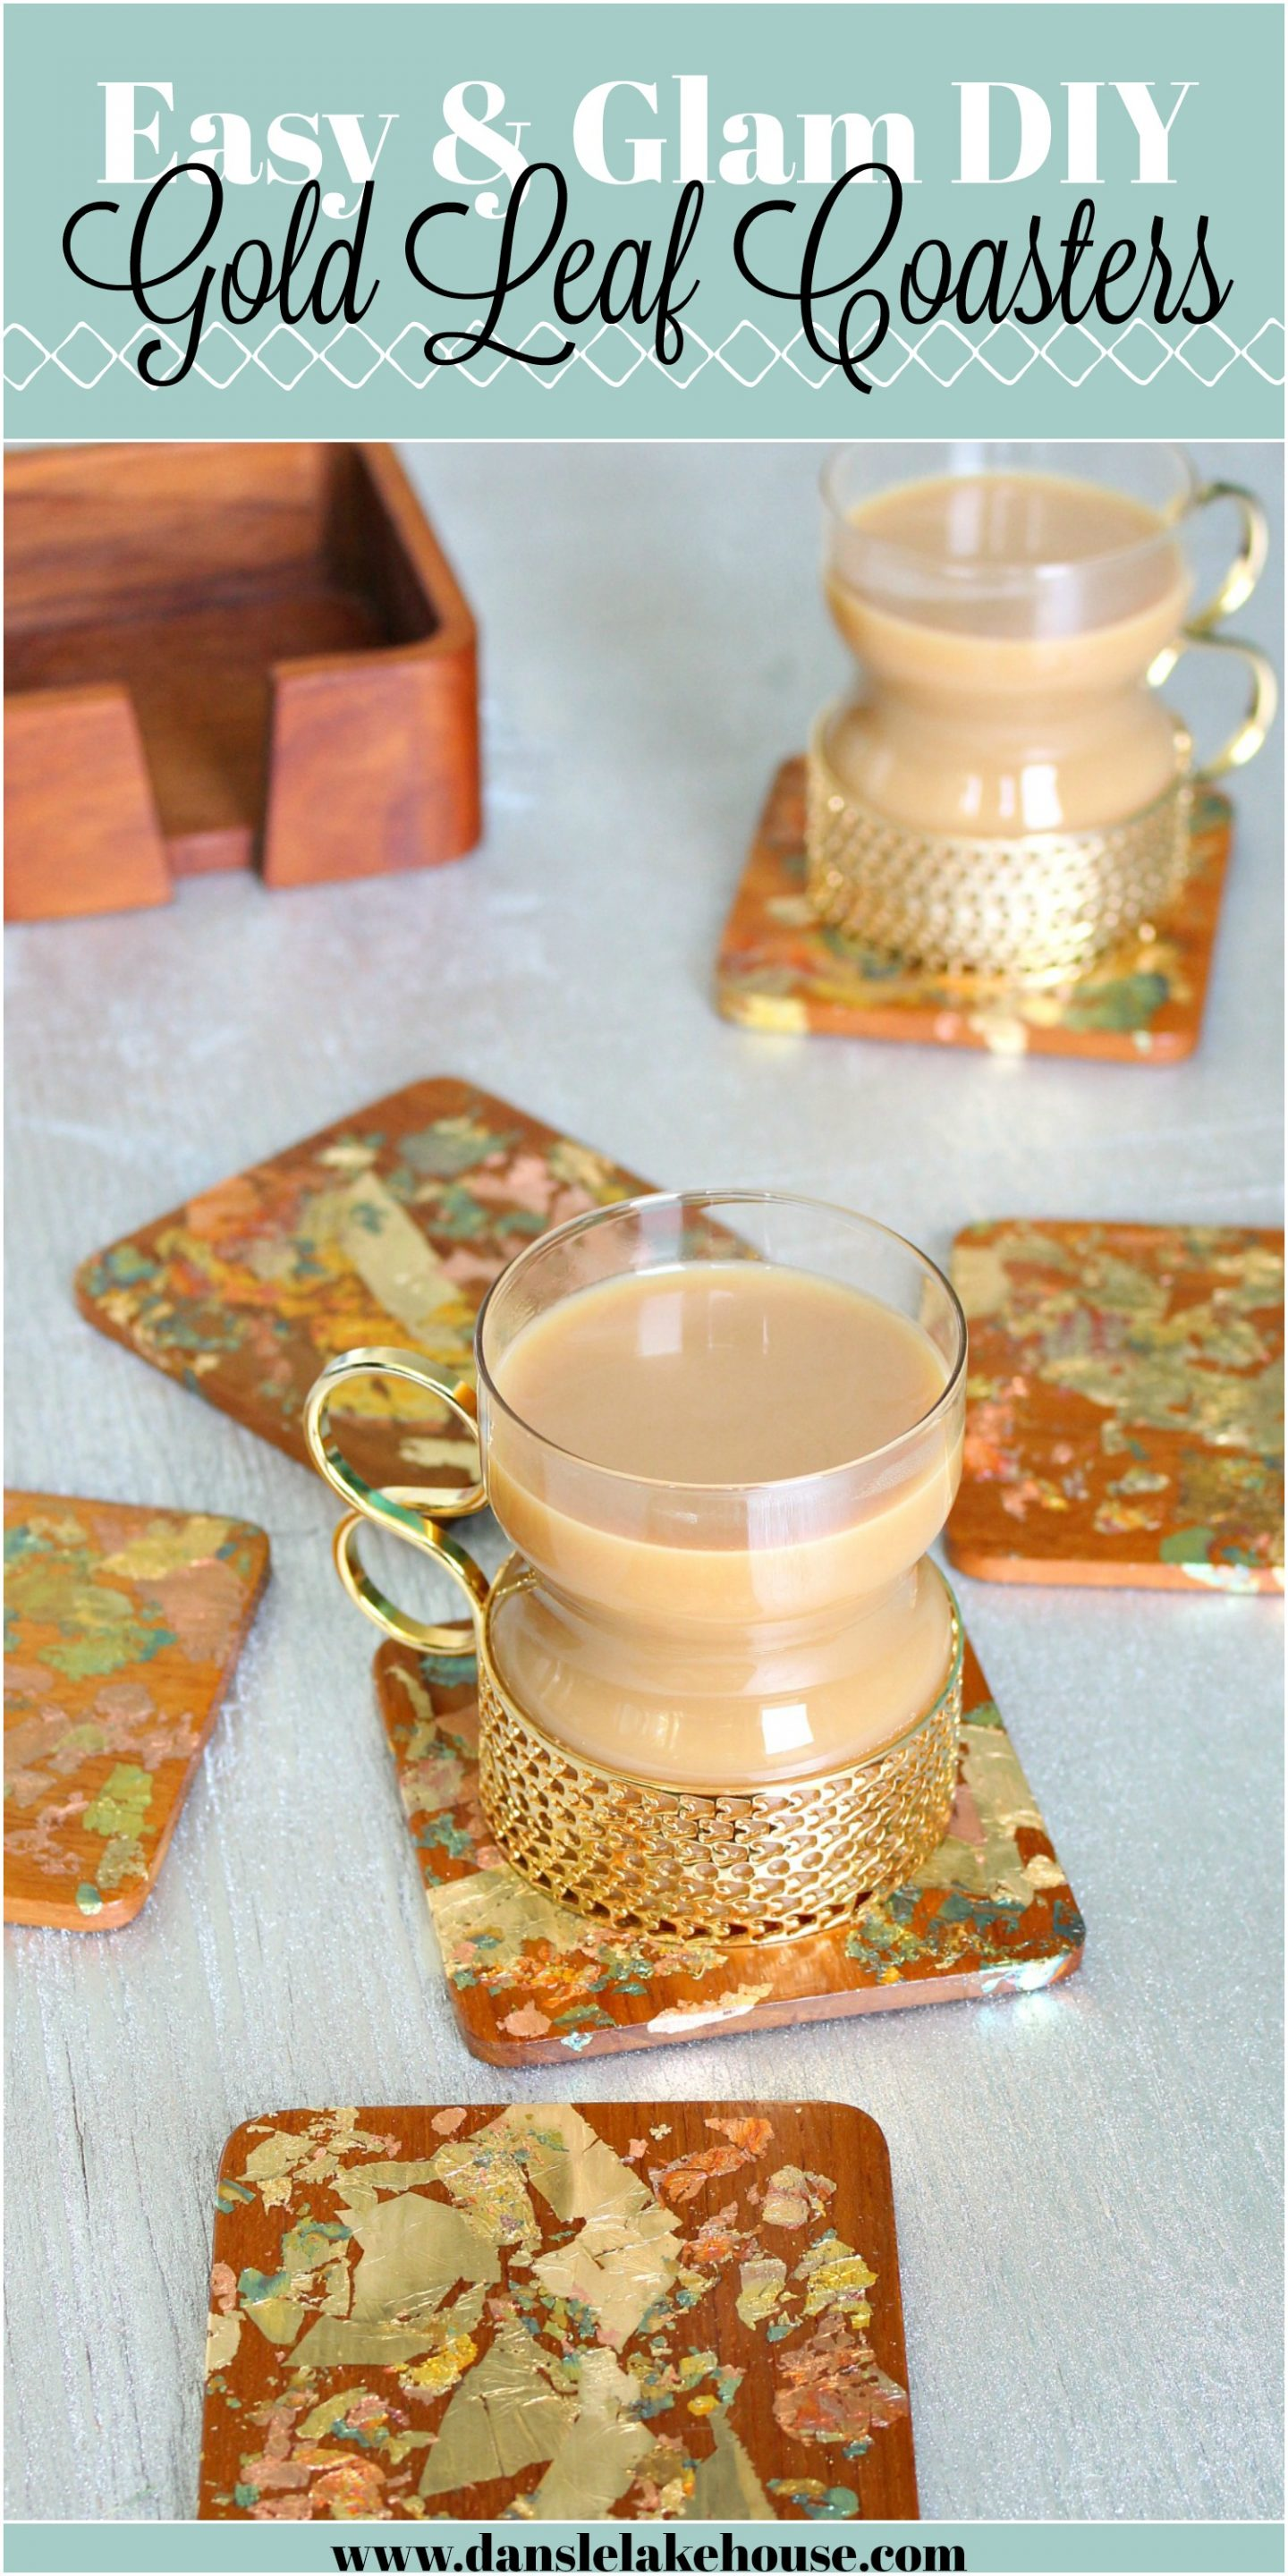 DIY coaster ideas for handmade gifts